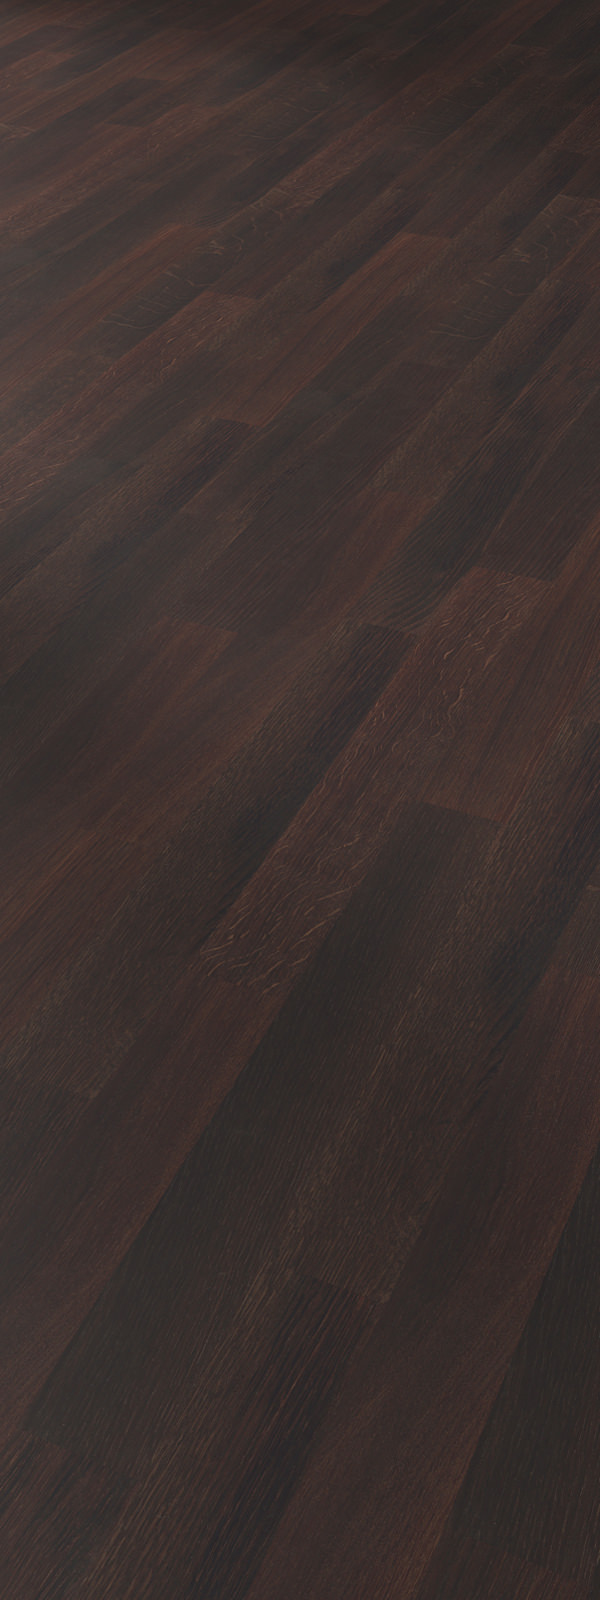 Board PREMIUM FLOOR HERRINGBONE Smoked Oak